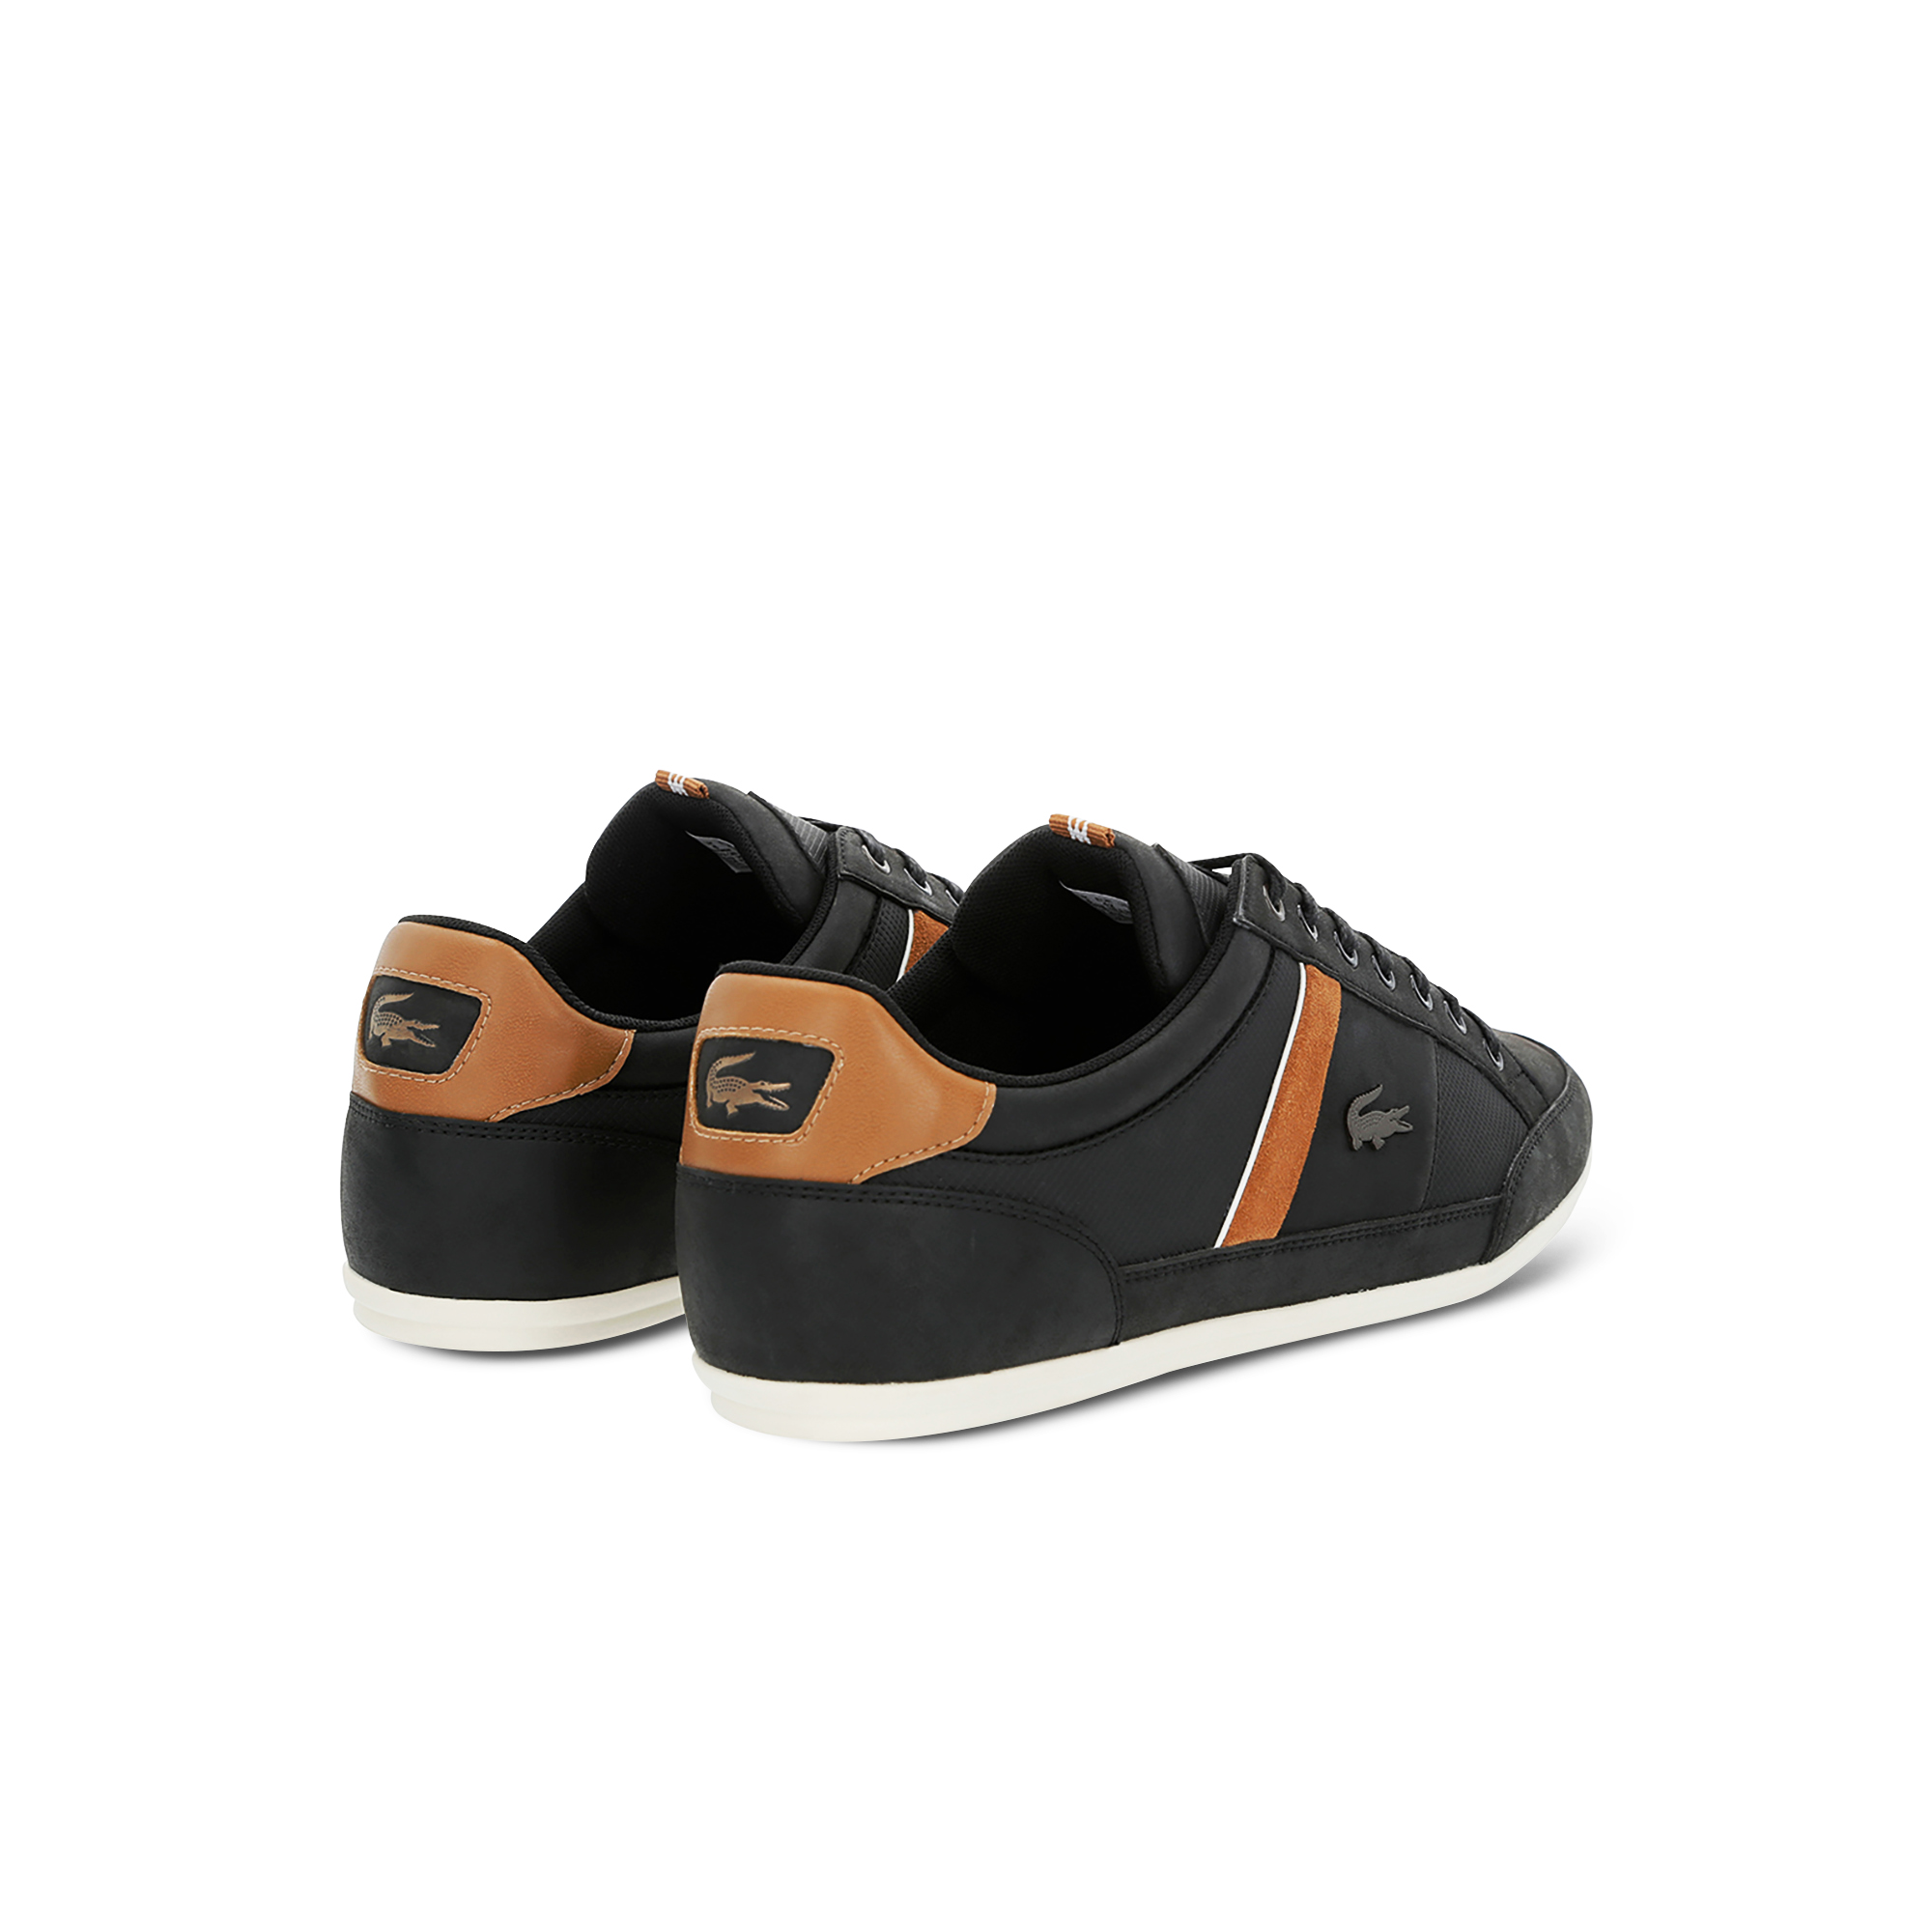 Men's Chaymon Embossed Leather Trainers